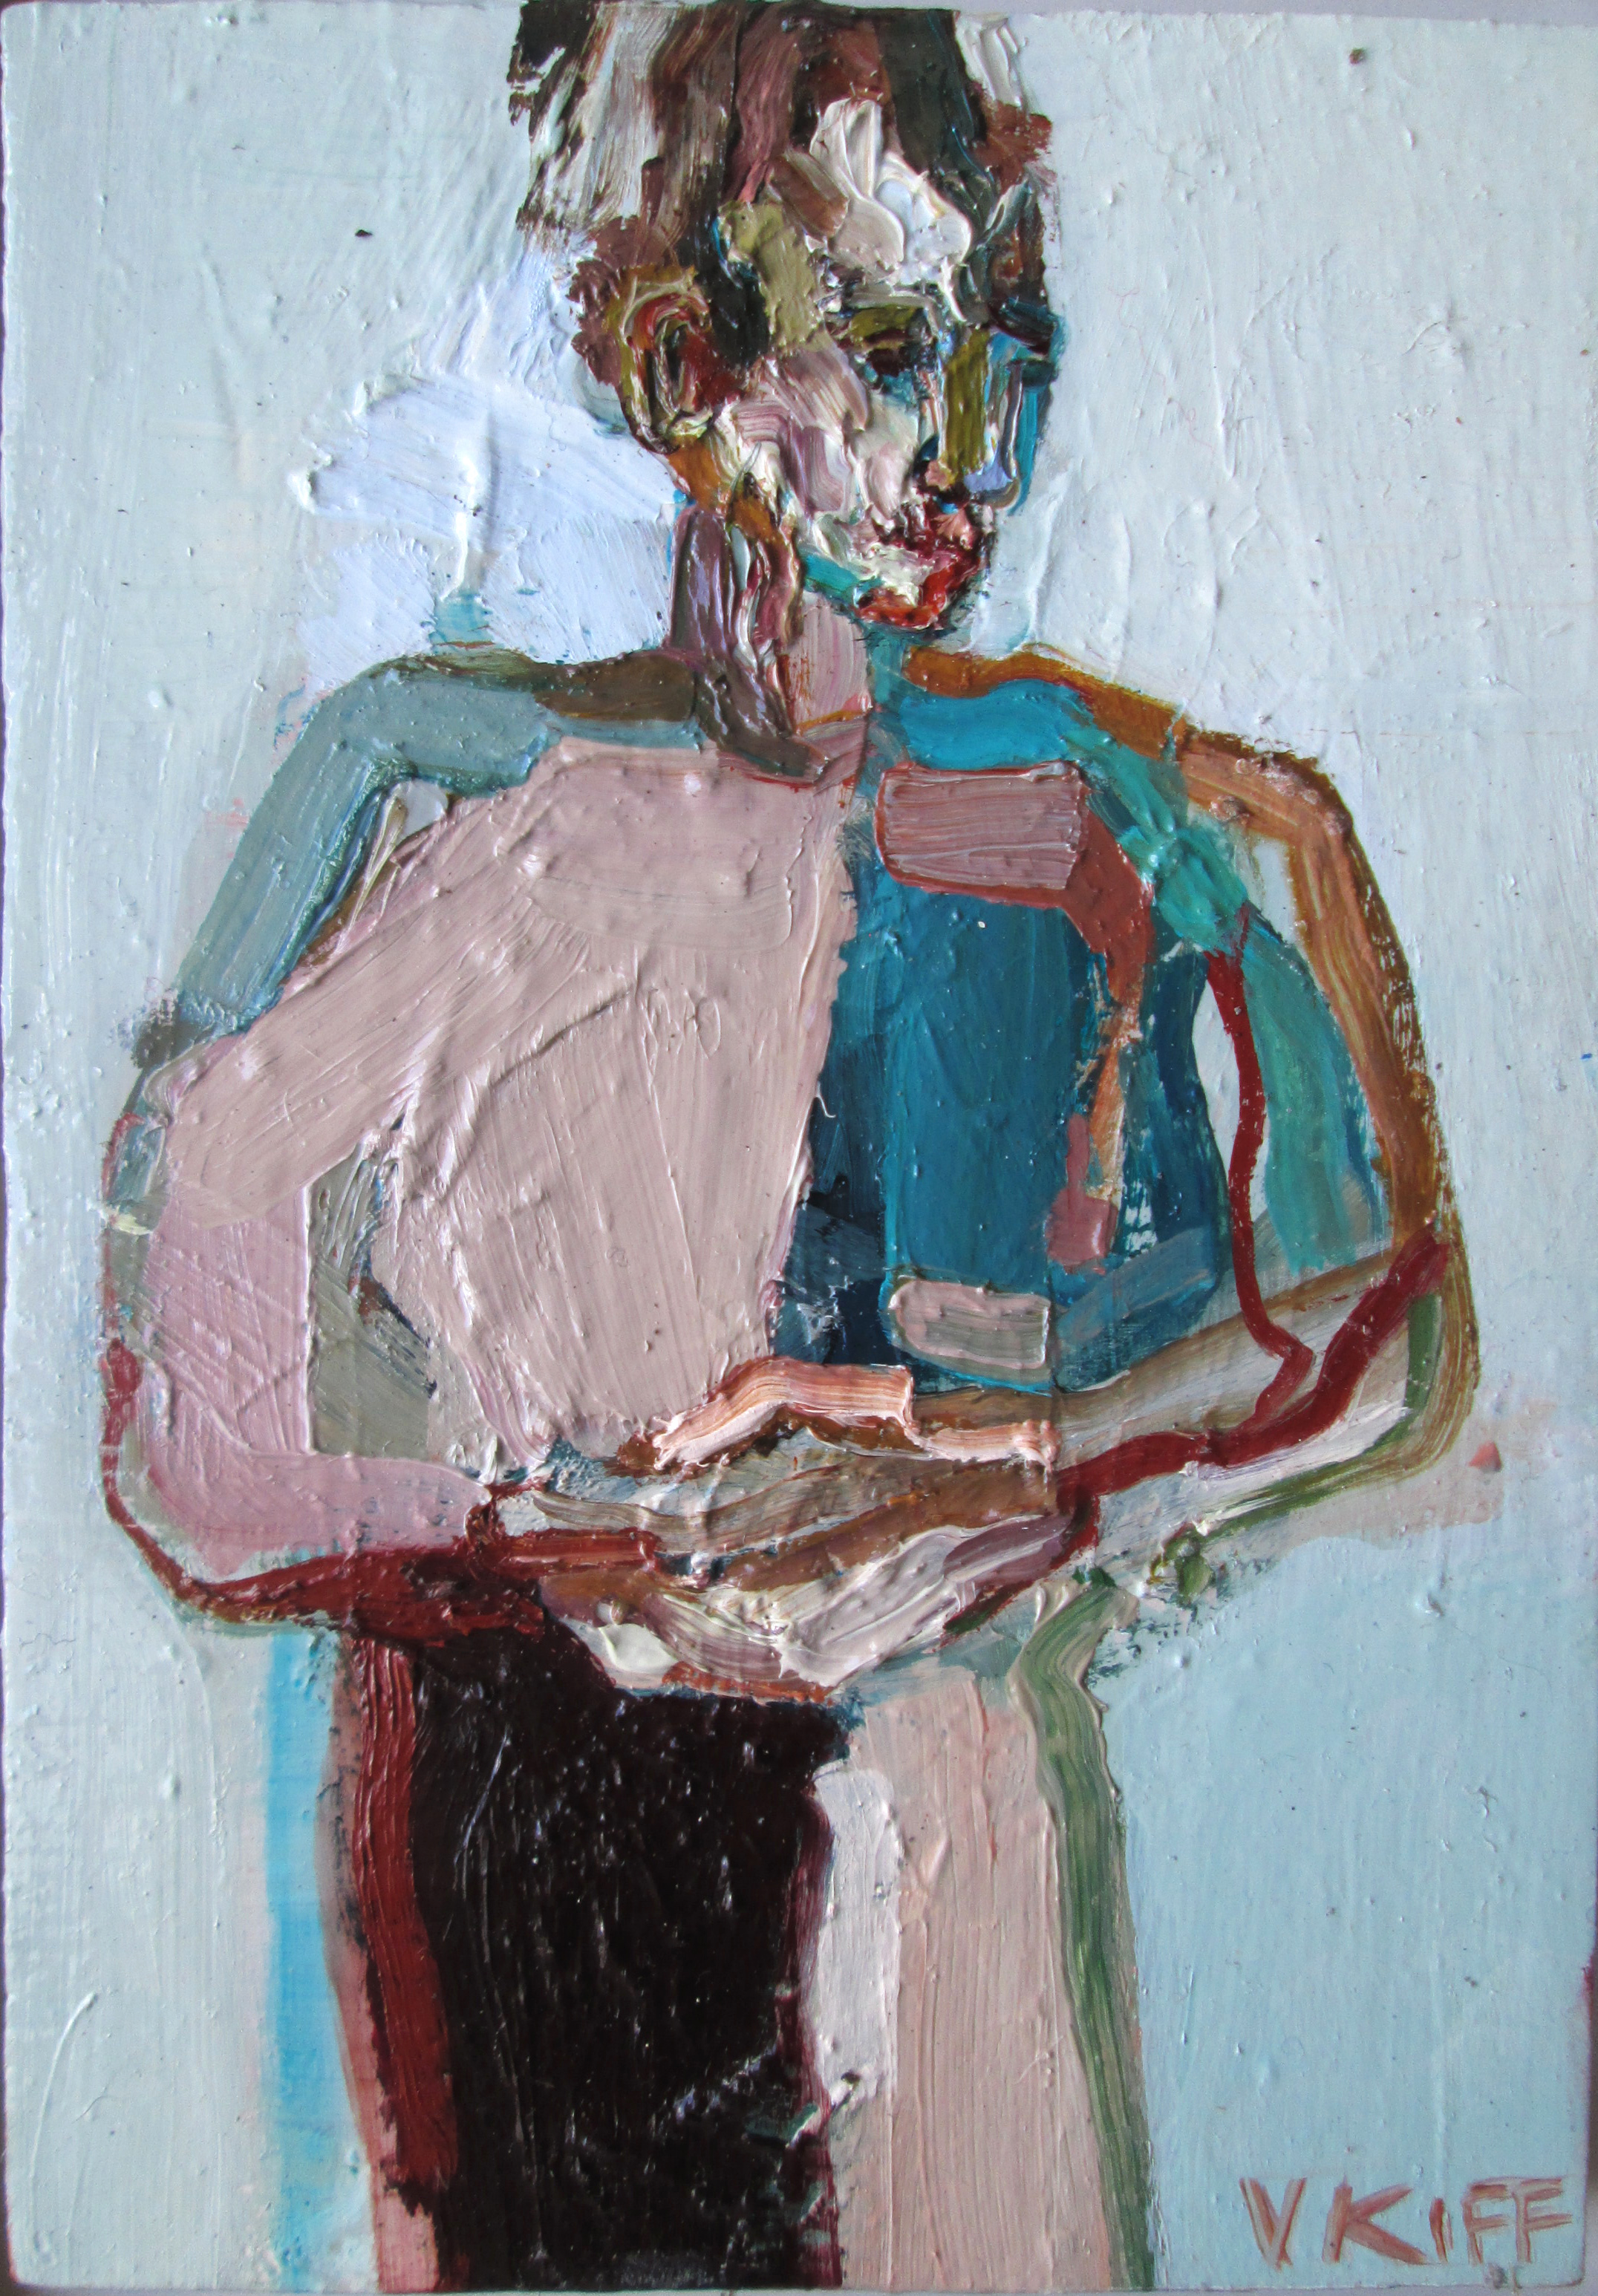 Title: Four Fragments  Size: 38 x 32 cm  Medium: Oil on wood panel  Price  SOLD